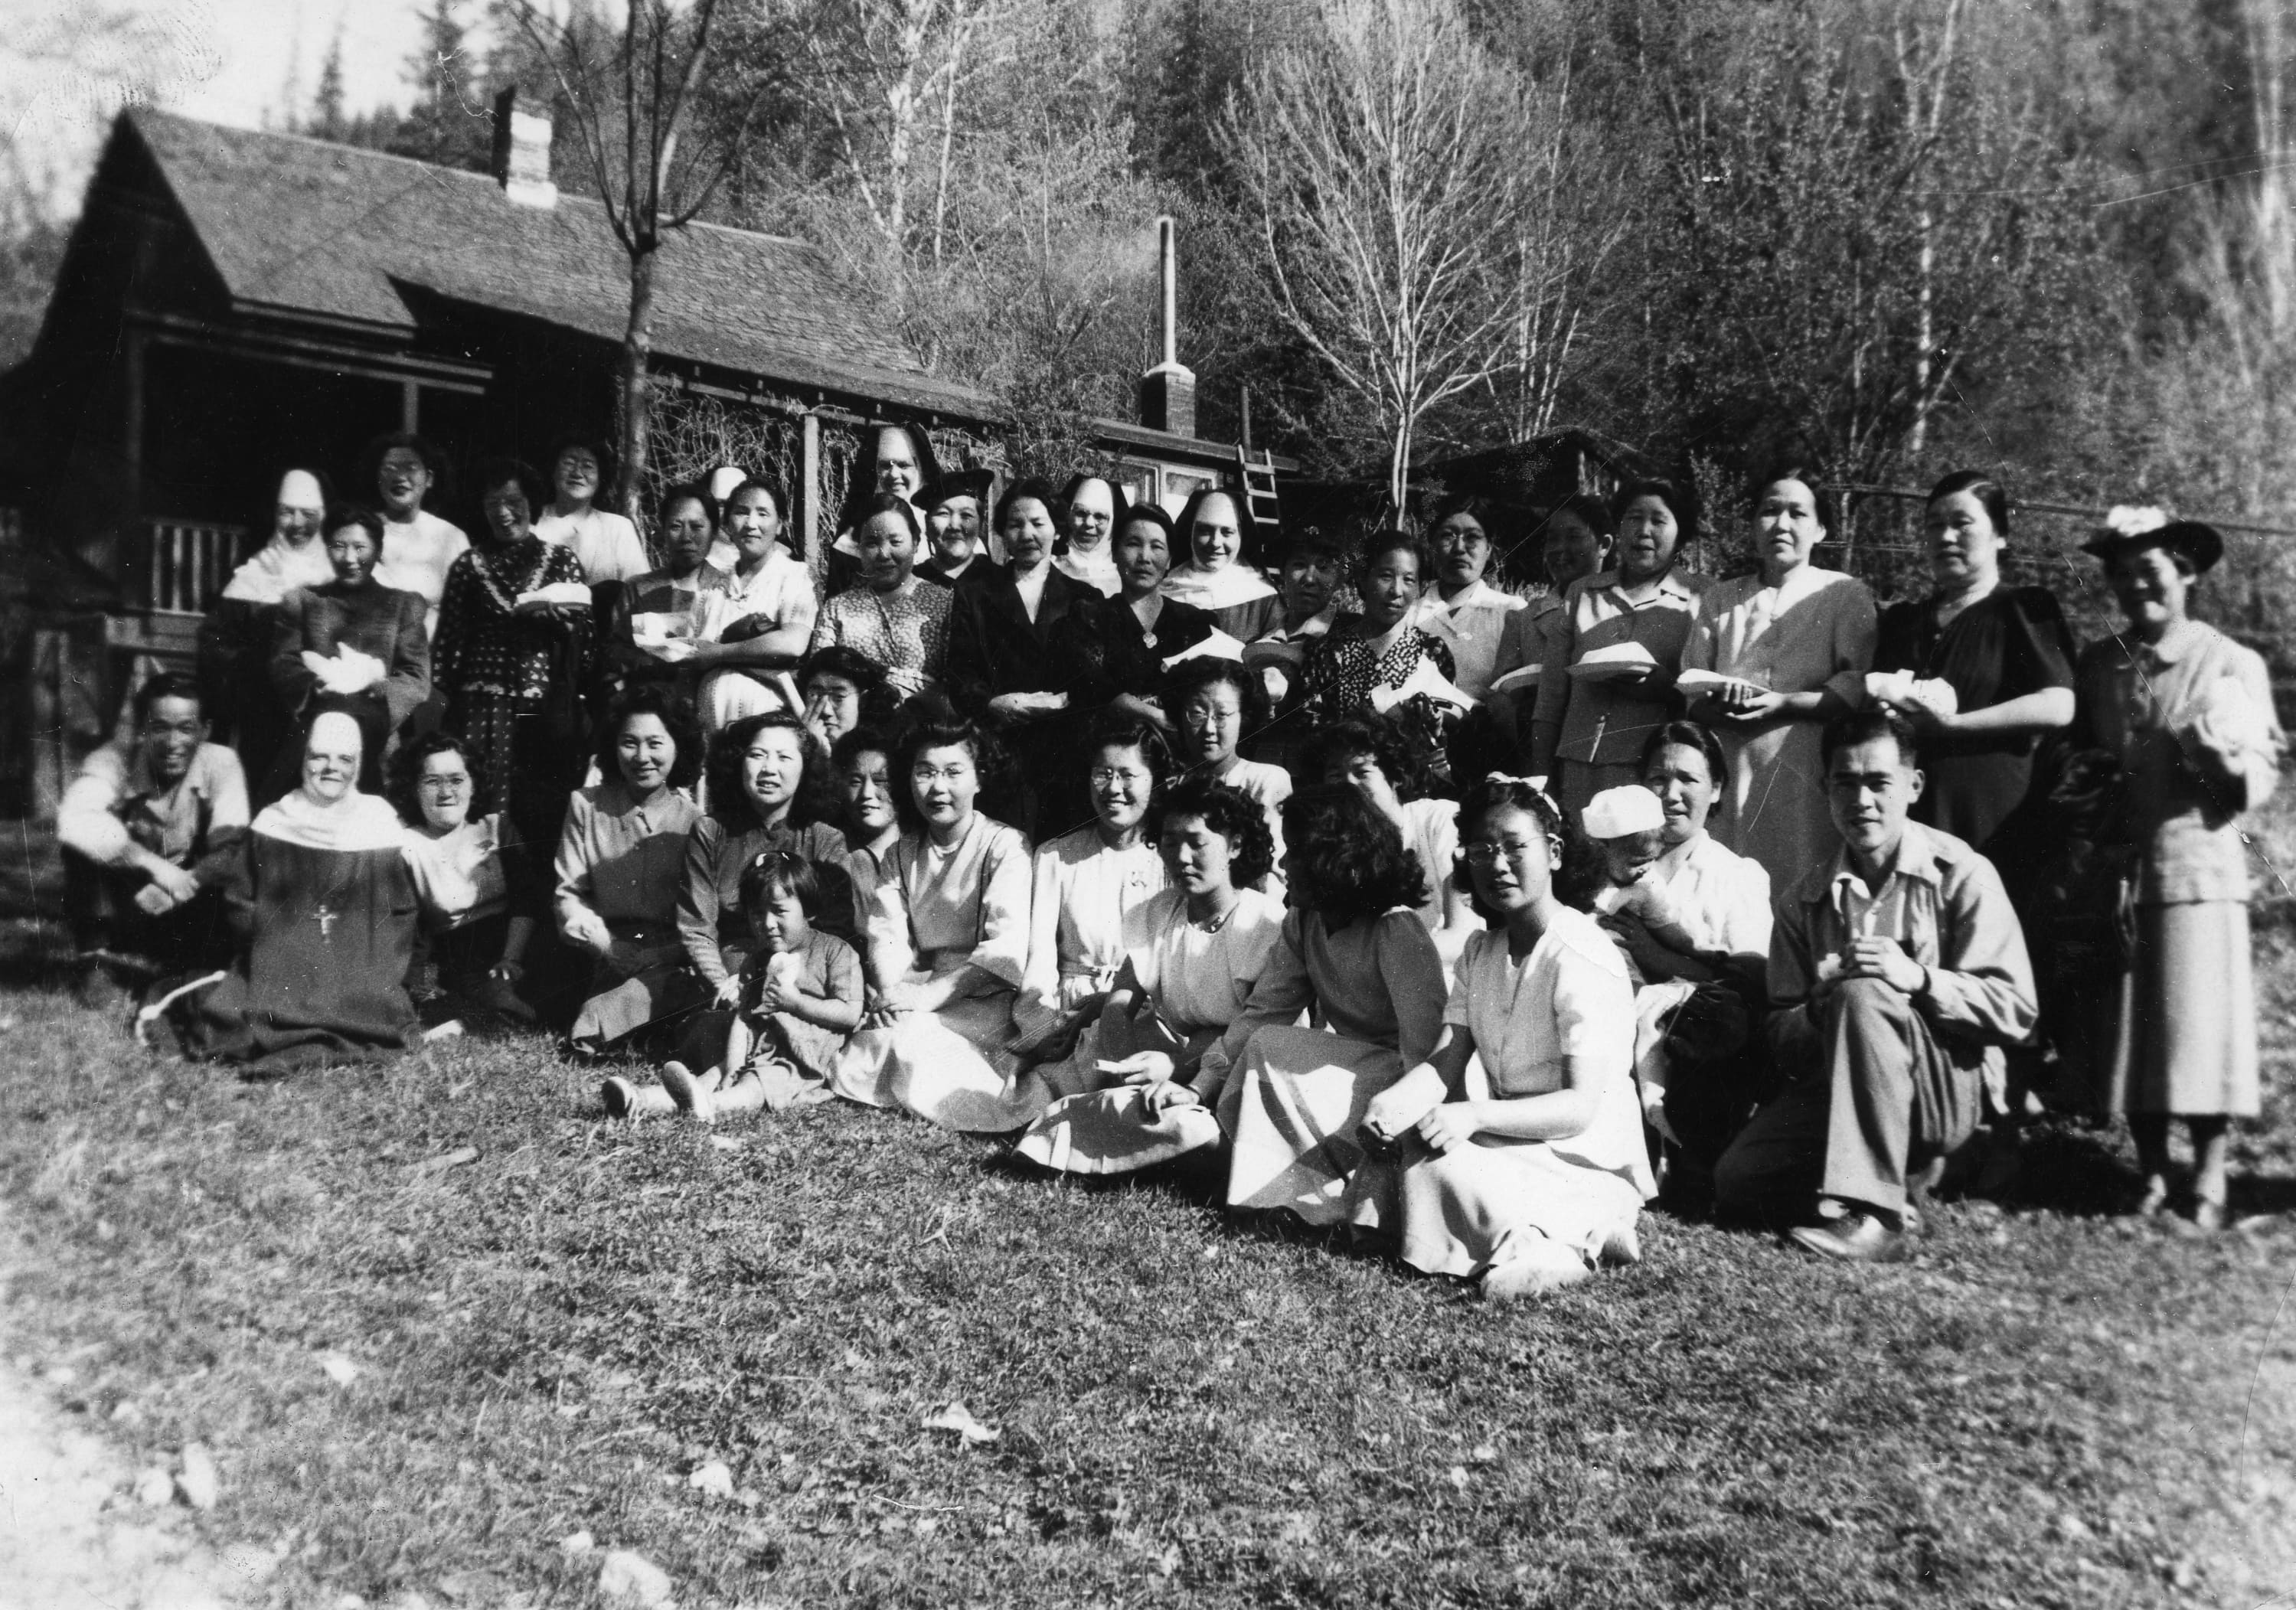 This historical photo depicts Nikkei youths, women, and men, along with Catholic Sisters standing and sitting outside a cabin in Greenwood, British Columbia.